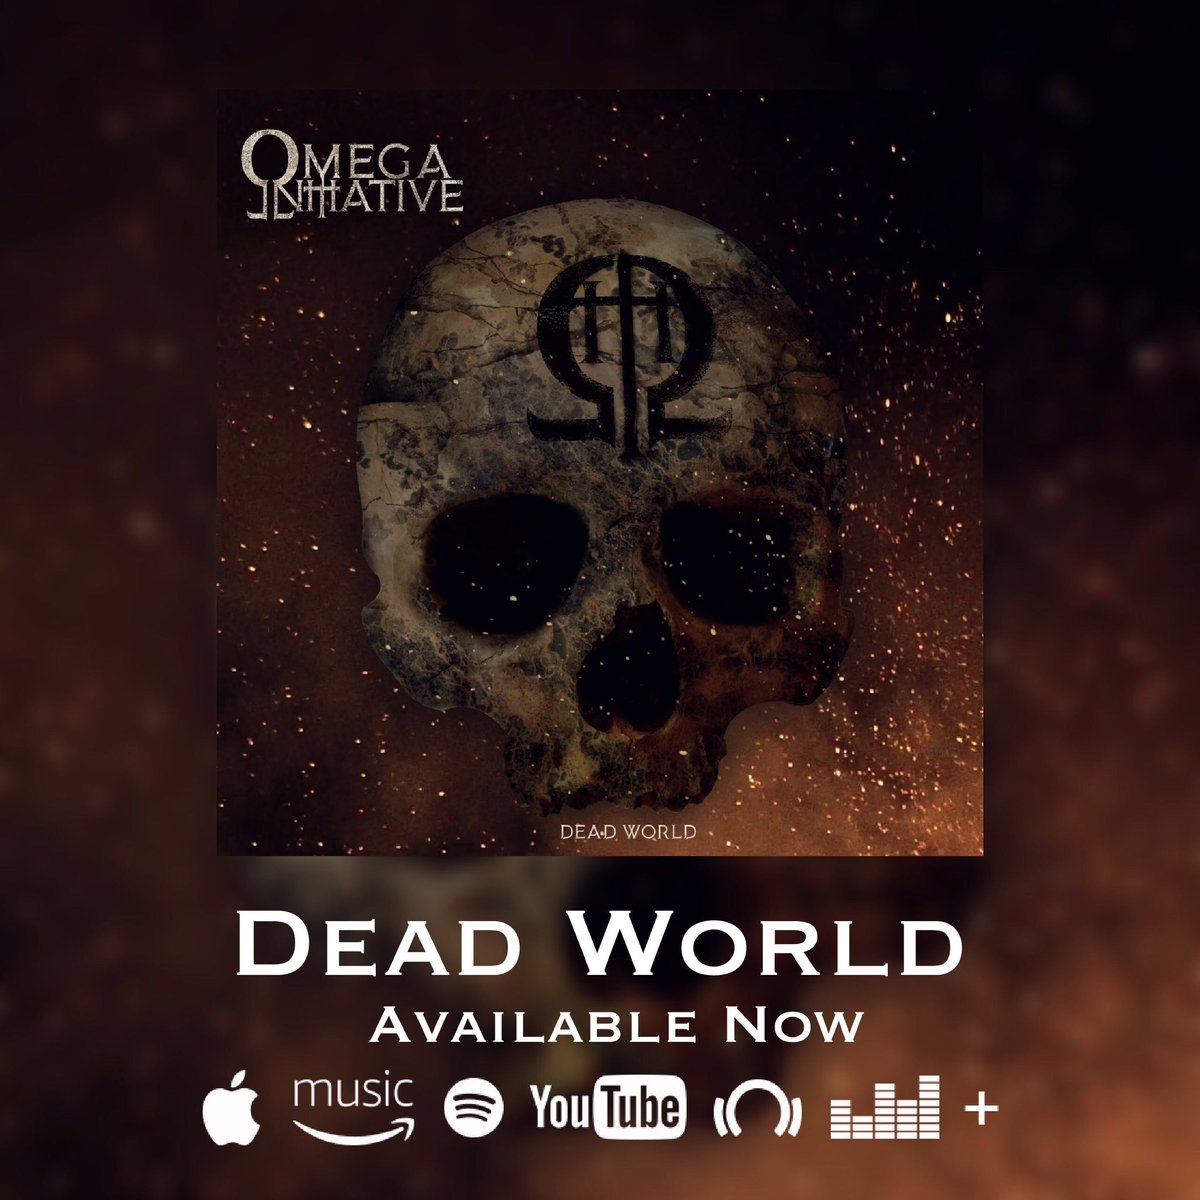 test Twitter Media - Dead World is now available to stream/download everywhere! #streaming #spotify #applemusic #amazonmusic #youtube #breakdowns #beatdowns #chug #alternative #metal #metalcore #schecterguitars #espguitars #ernieballstrings #marshallamps #blackstaramps #bosspedals #horizondevices https://t.co/IsYYO4RIZf